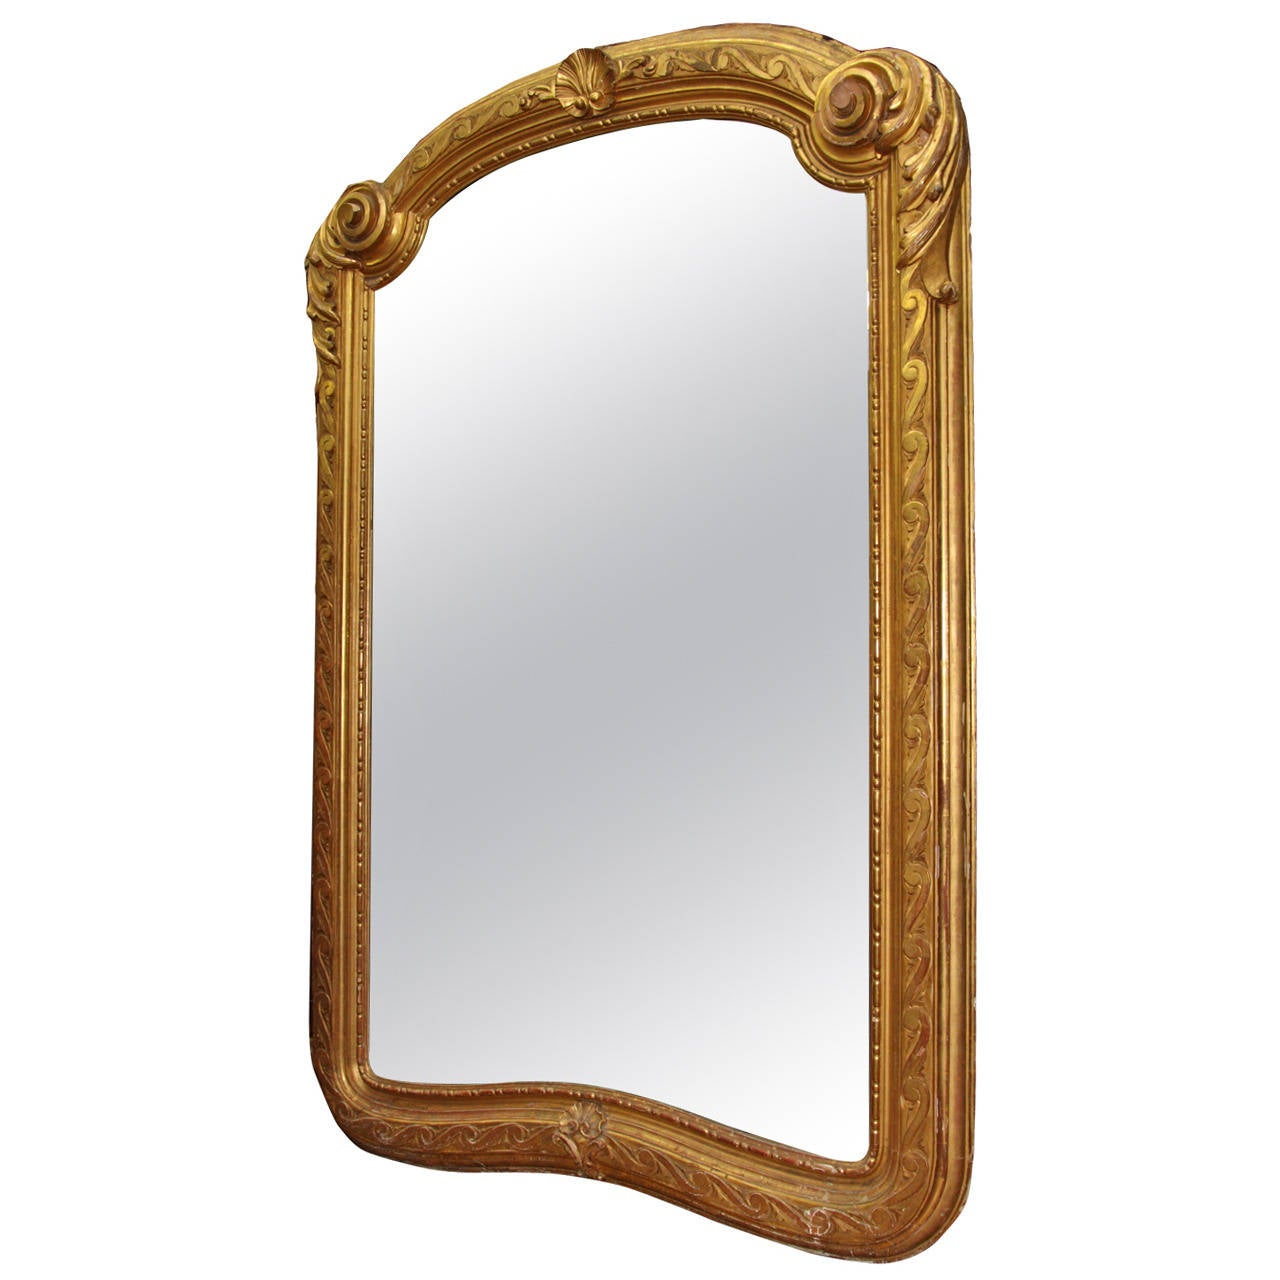 Large antique french carved giltwood mirror for sale at for Mirrors for sale